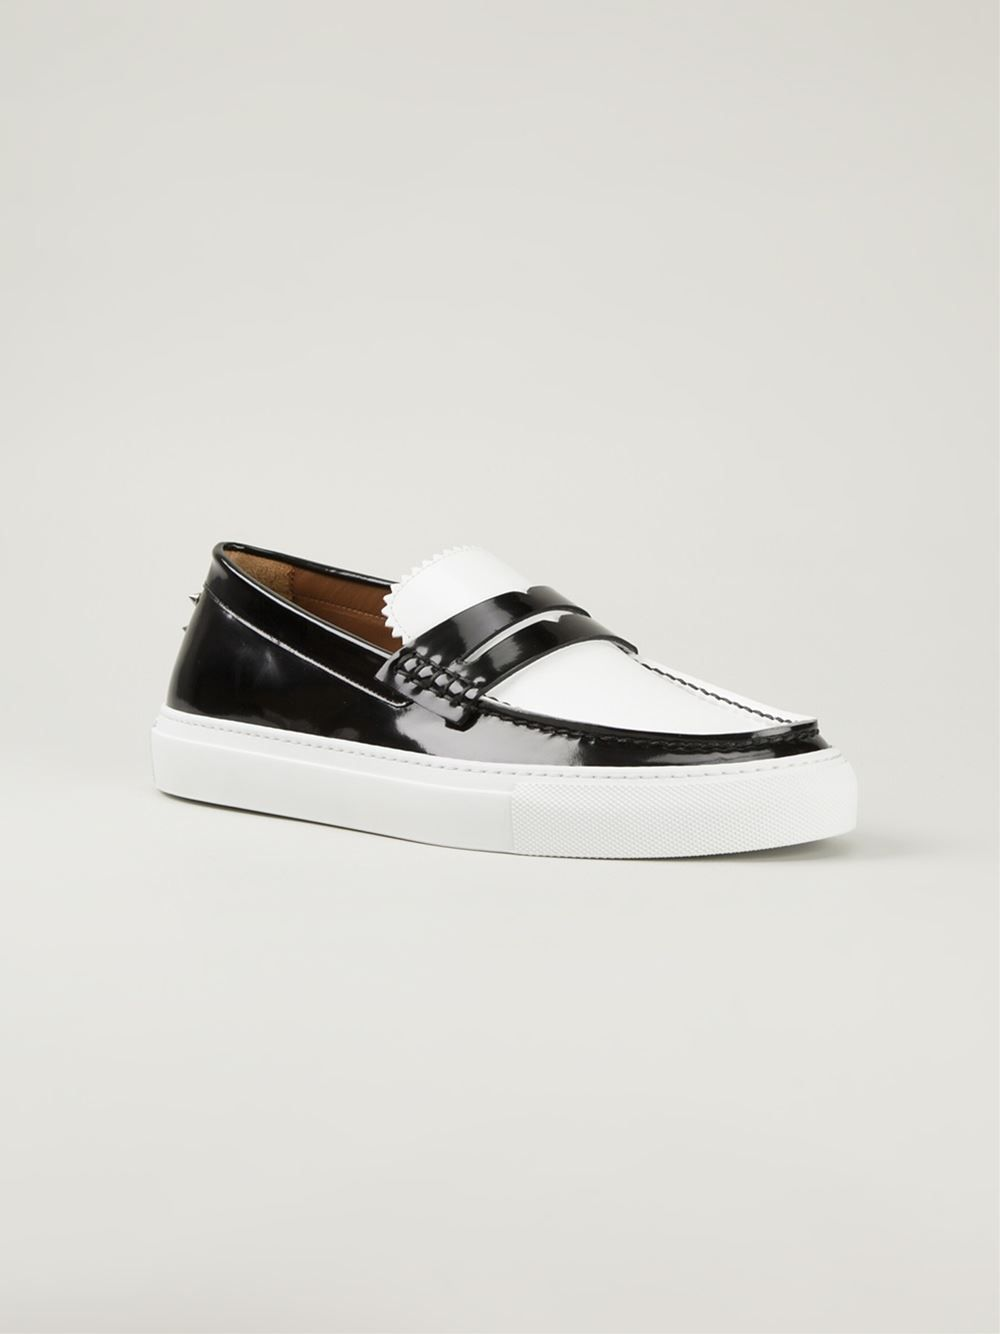 4e1a49c34a2 Givenchy Loafer In Kontrastfarben - O  - Farfetch.com